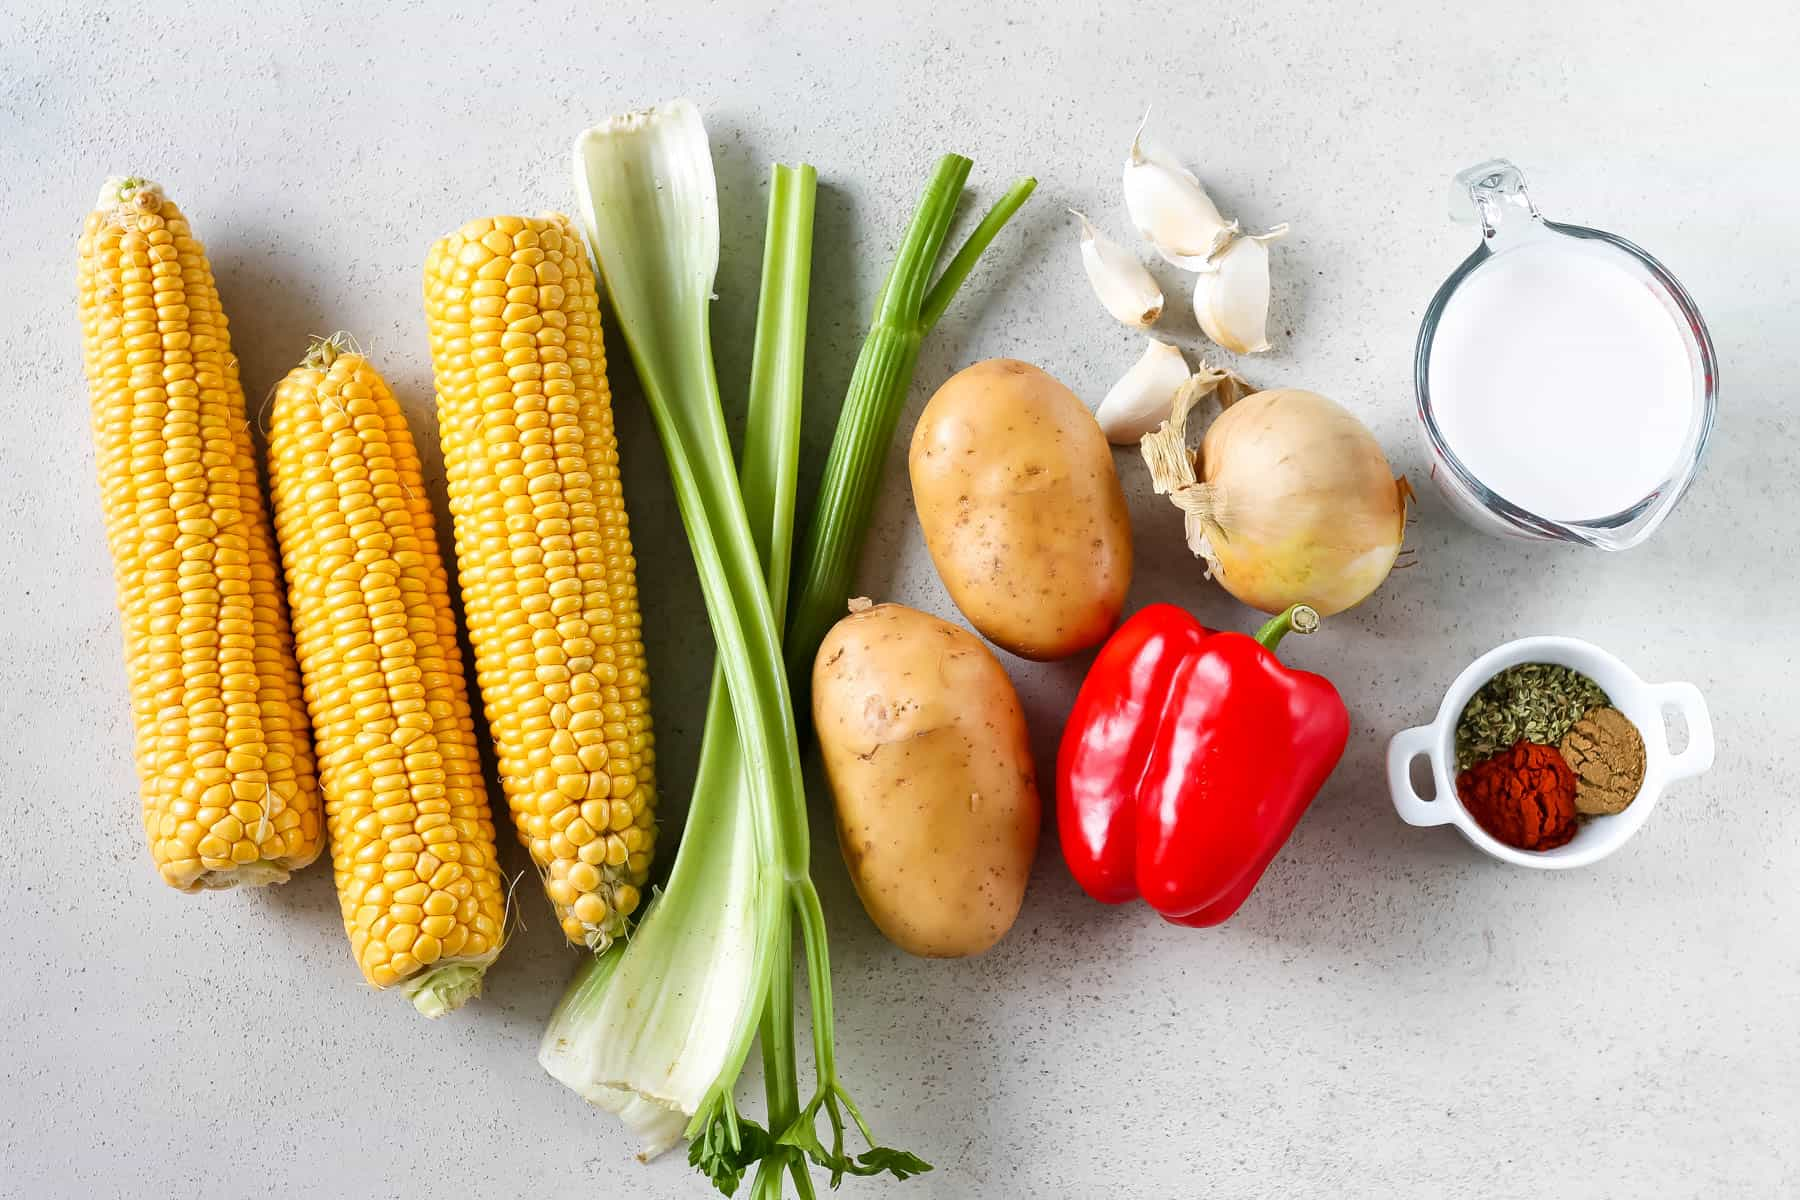 corn, celery, potatoes, red pepper, garlic, spices, and coconut milk on a grey background